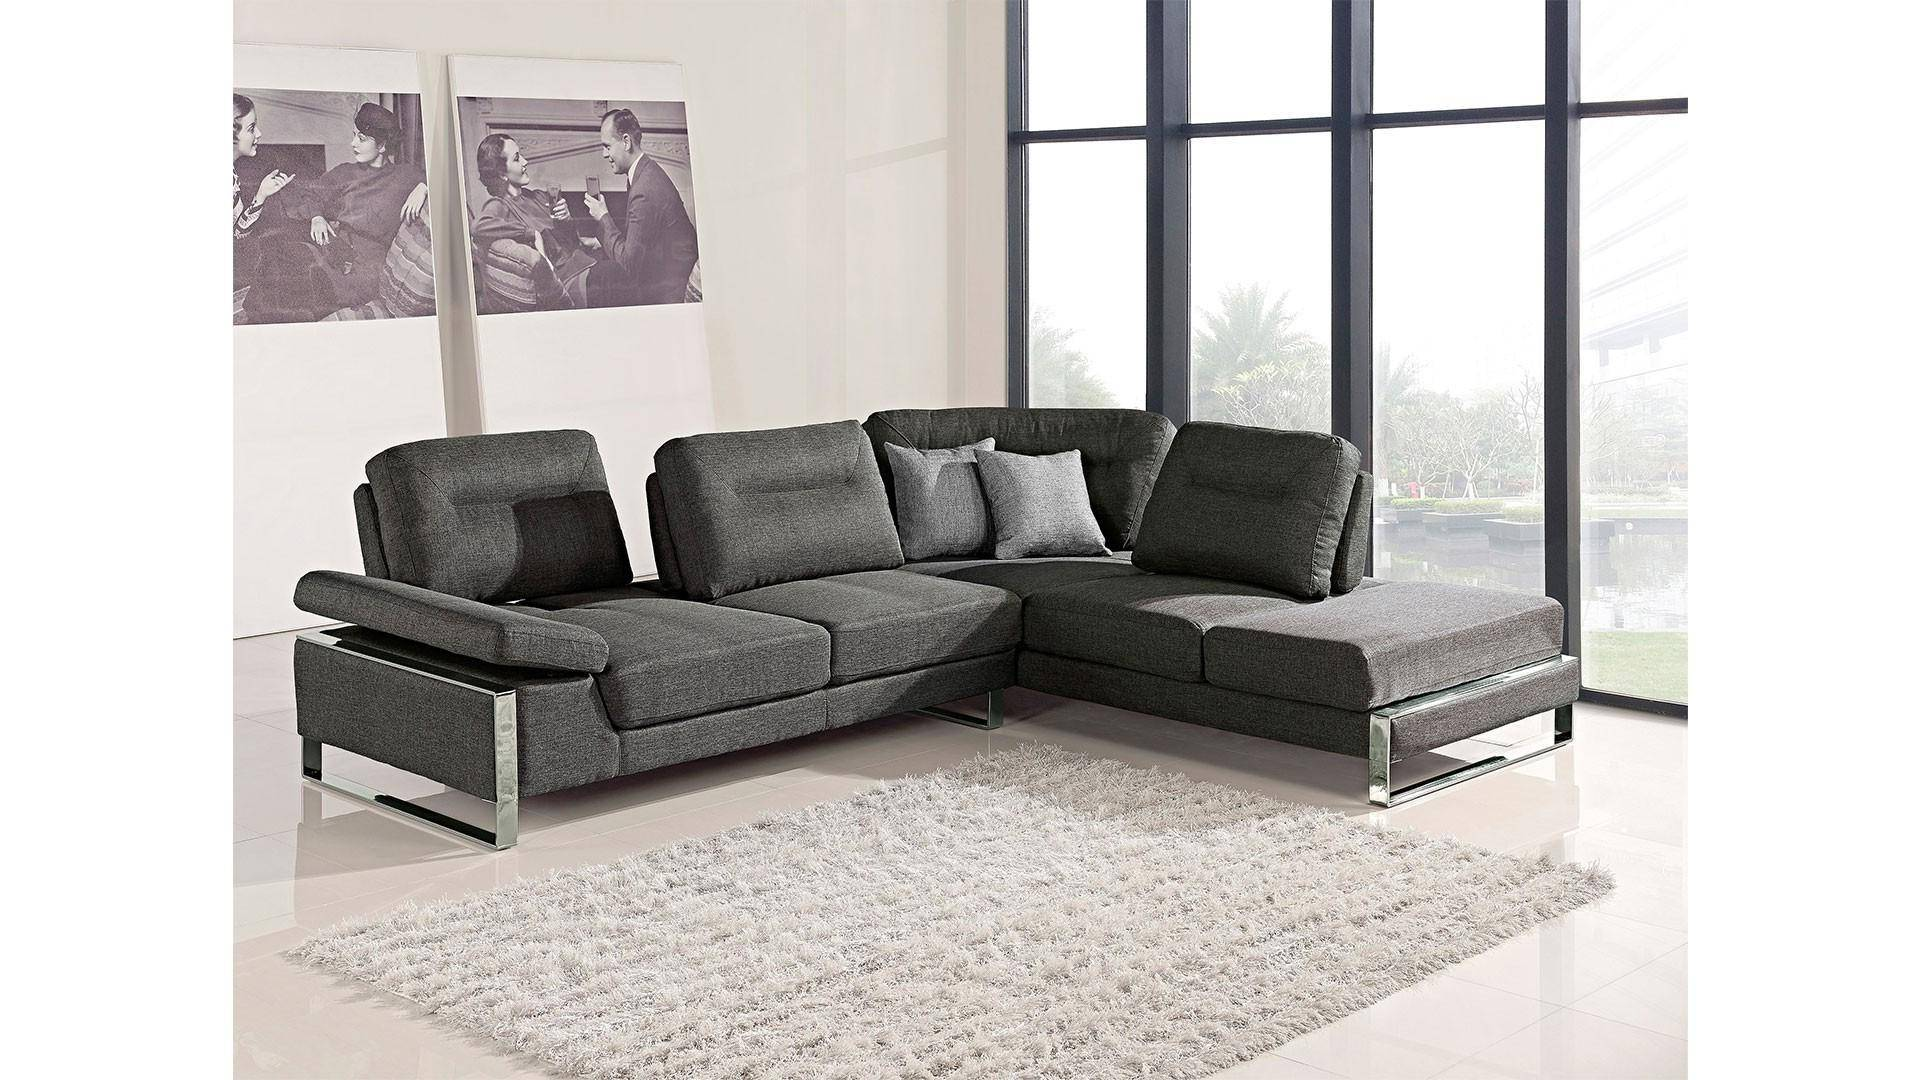 Remarkable At Home Usa Verona Grey Fabric Ultra Modern Sectional Sofa Squirreltailoven Fun Painted Chair Ideas Images Squirreltailovenorg